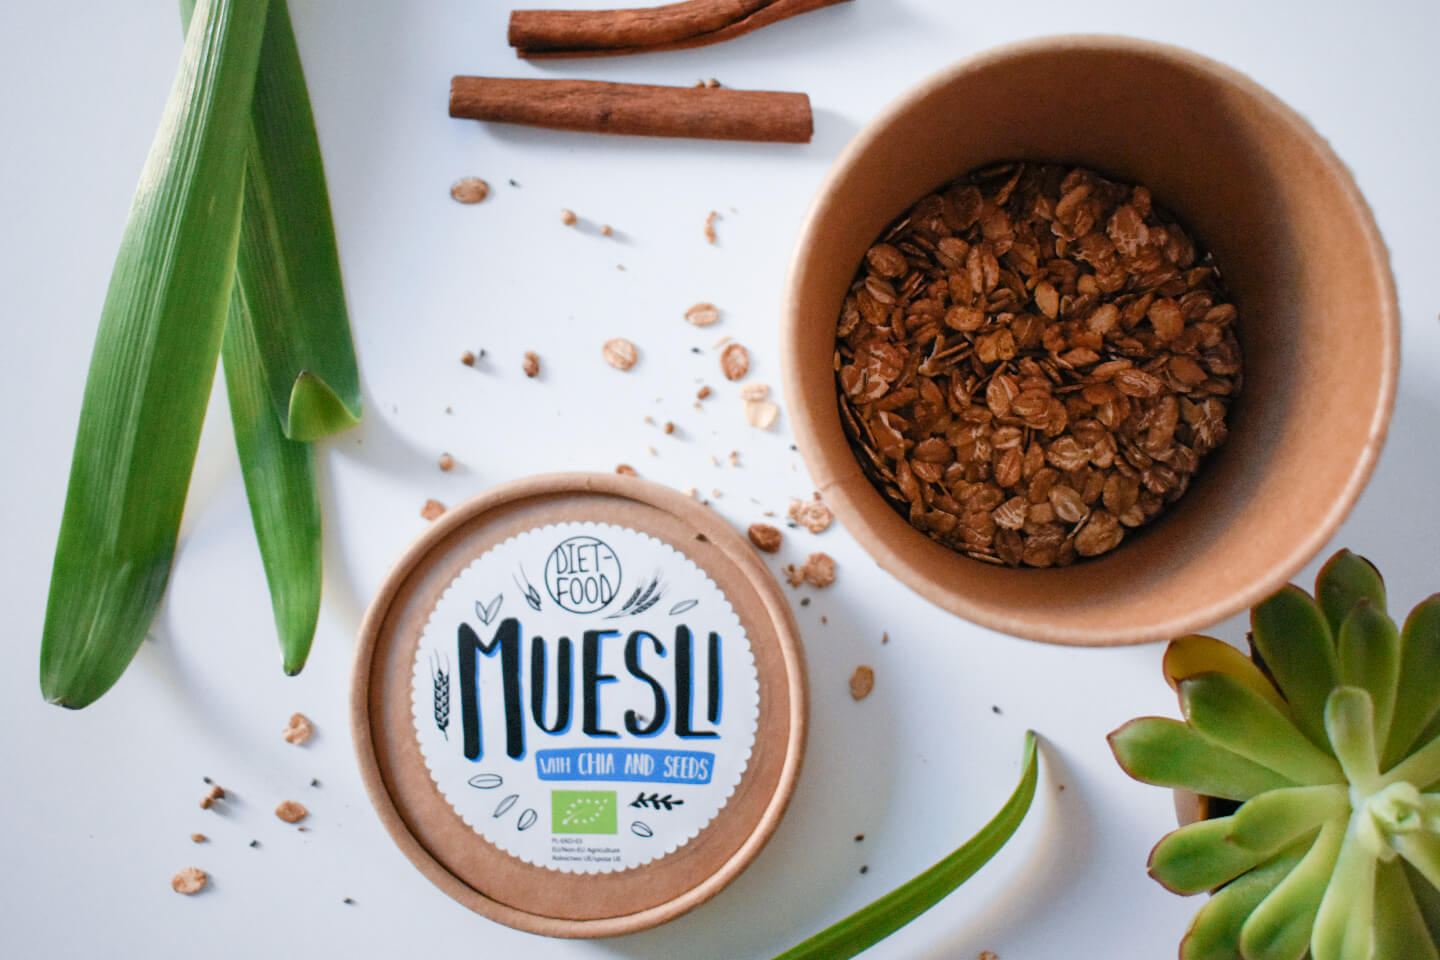 musli bio cu chia via naturalia diet food